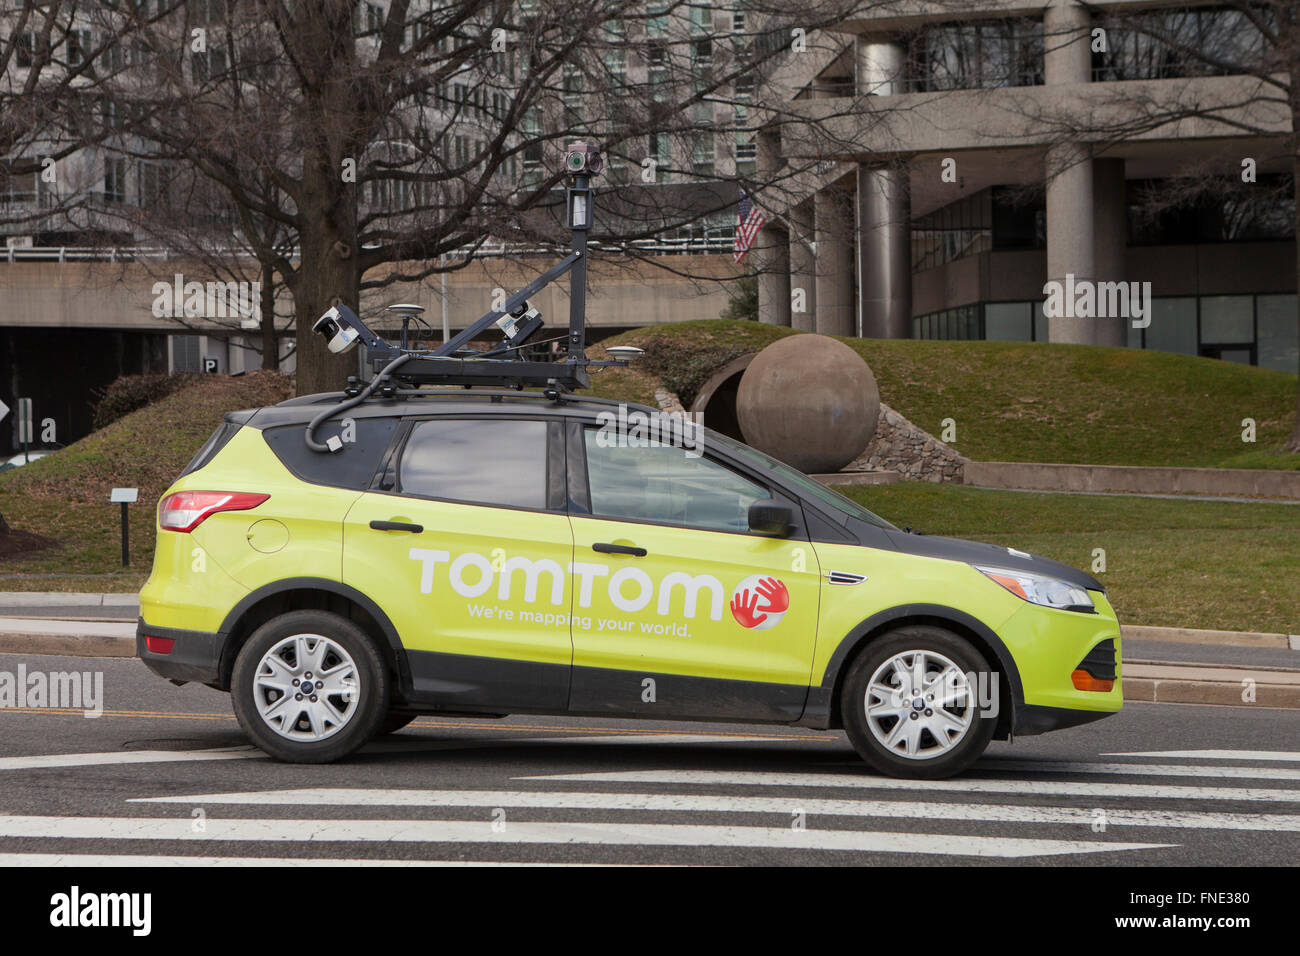 TomTom street view car - Virginia USA - Stock Image